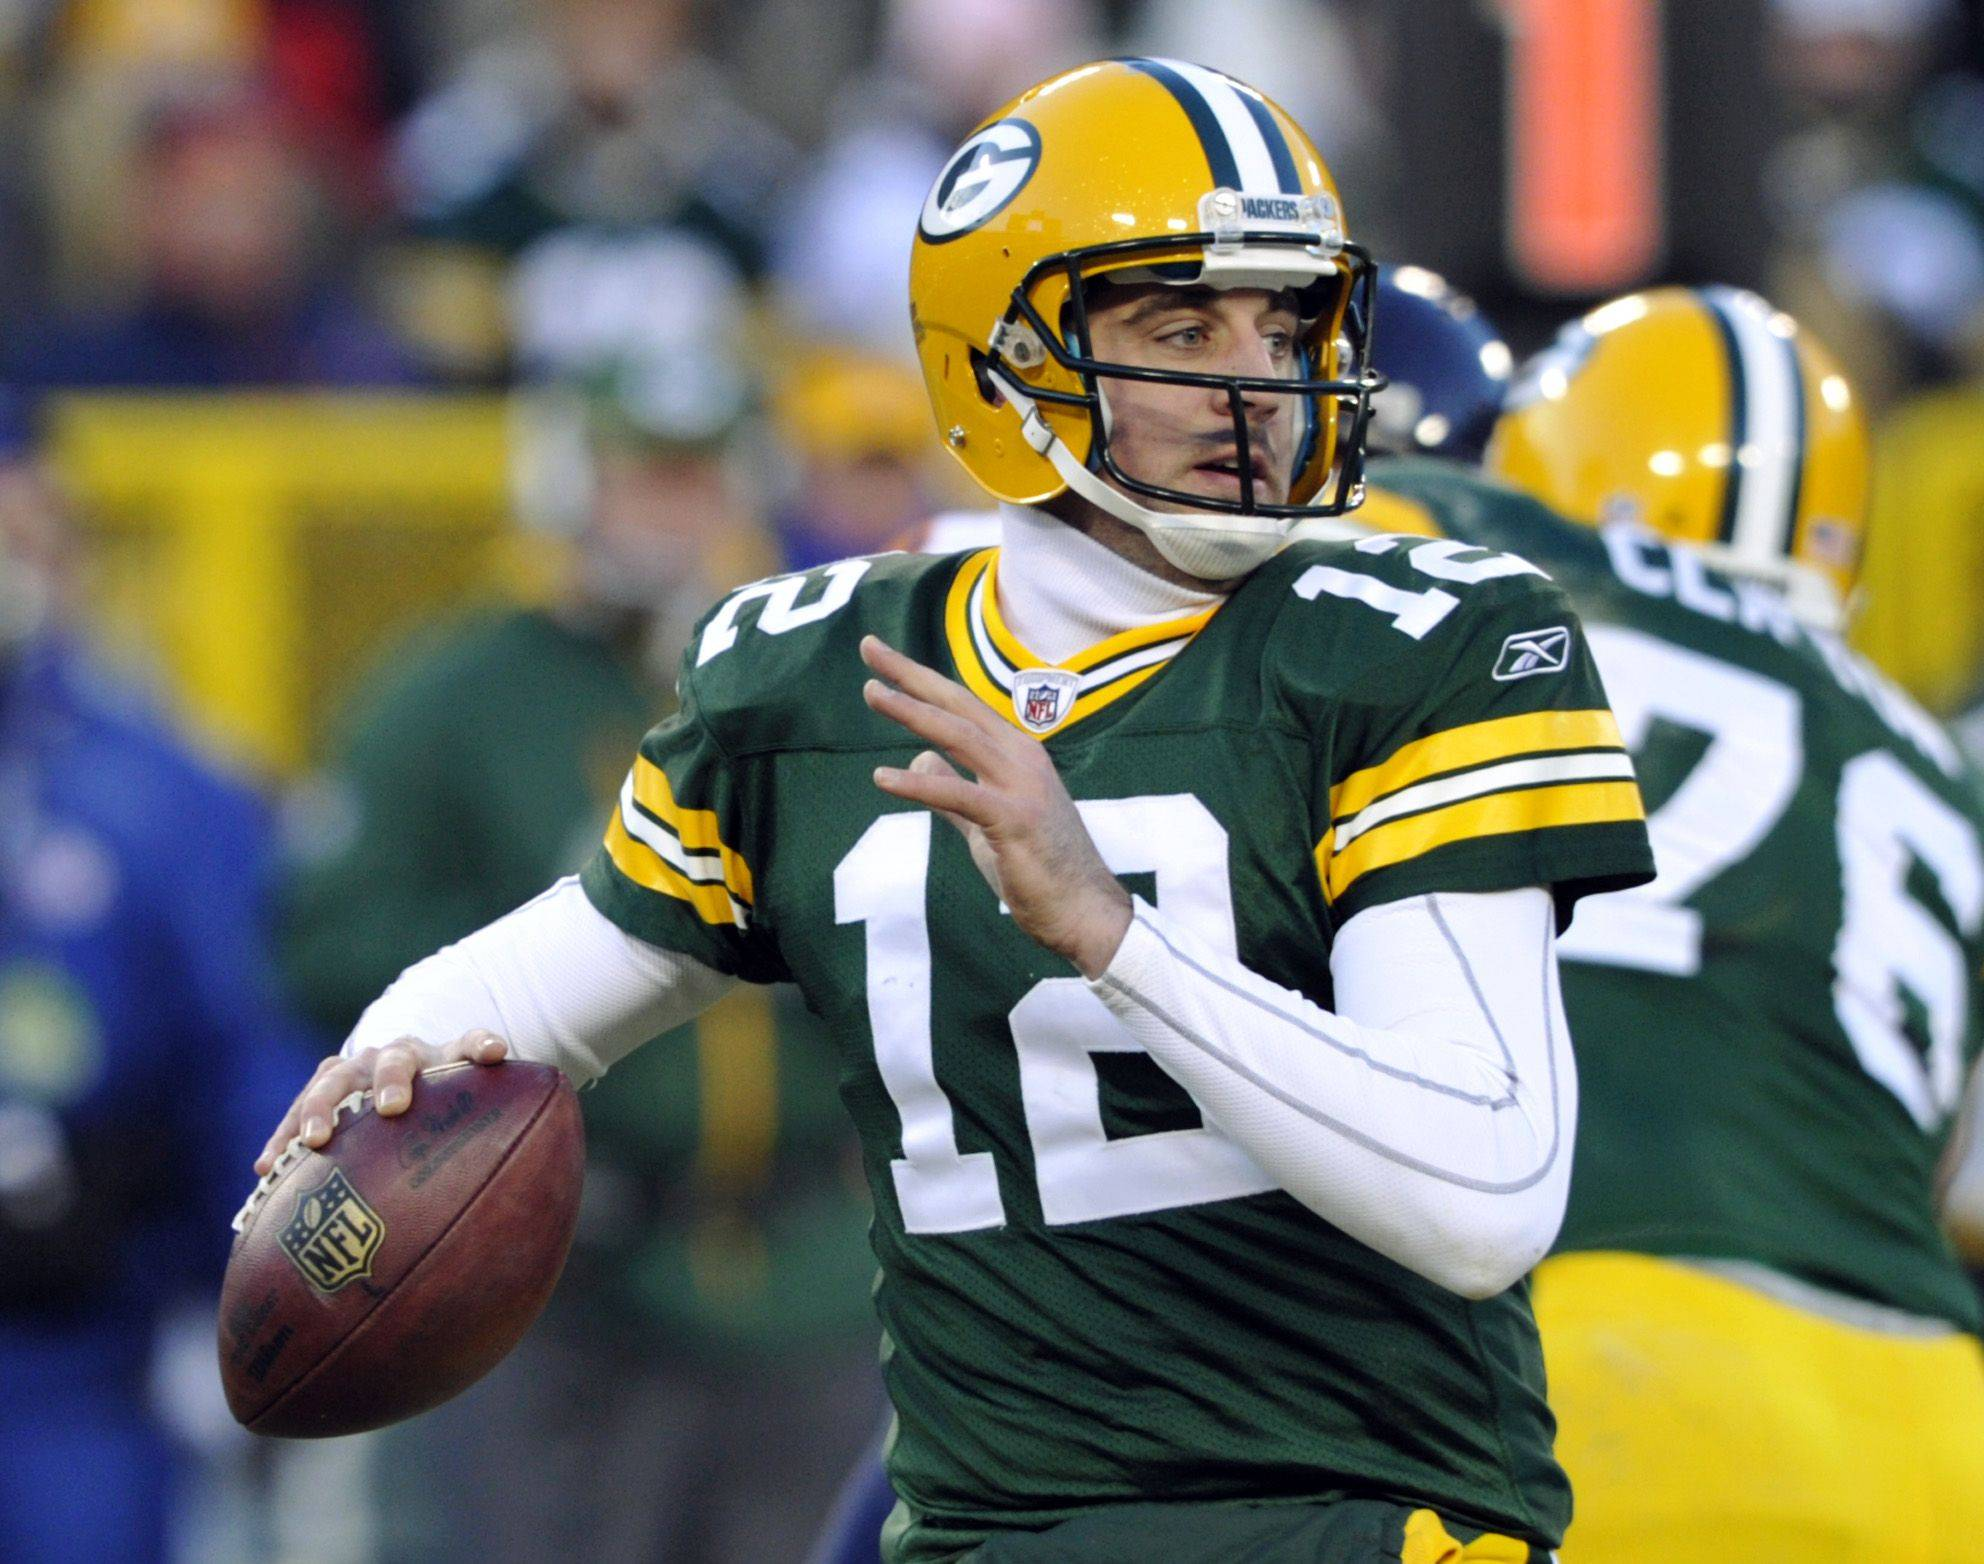 Green Bay Packers quarterback Aaron Rodgers drops back to pass during the first half.